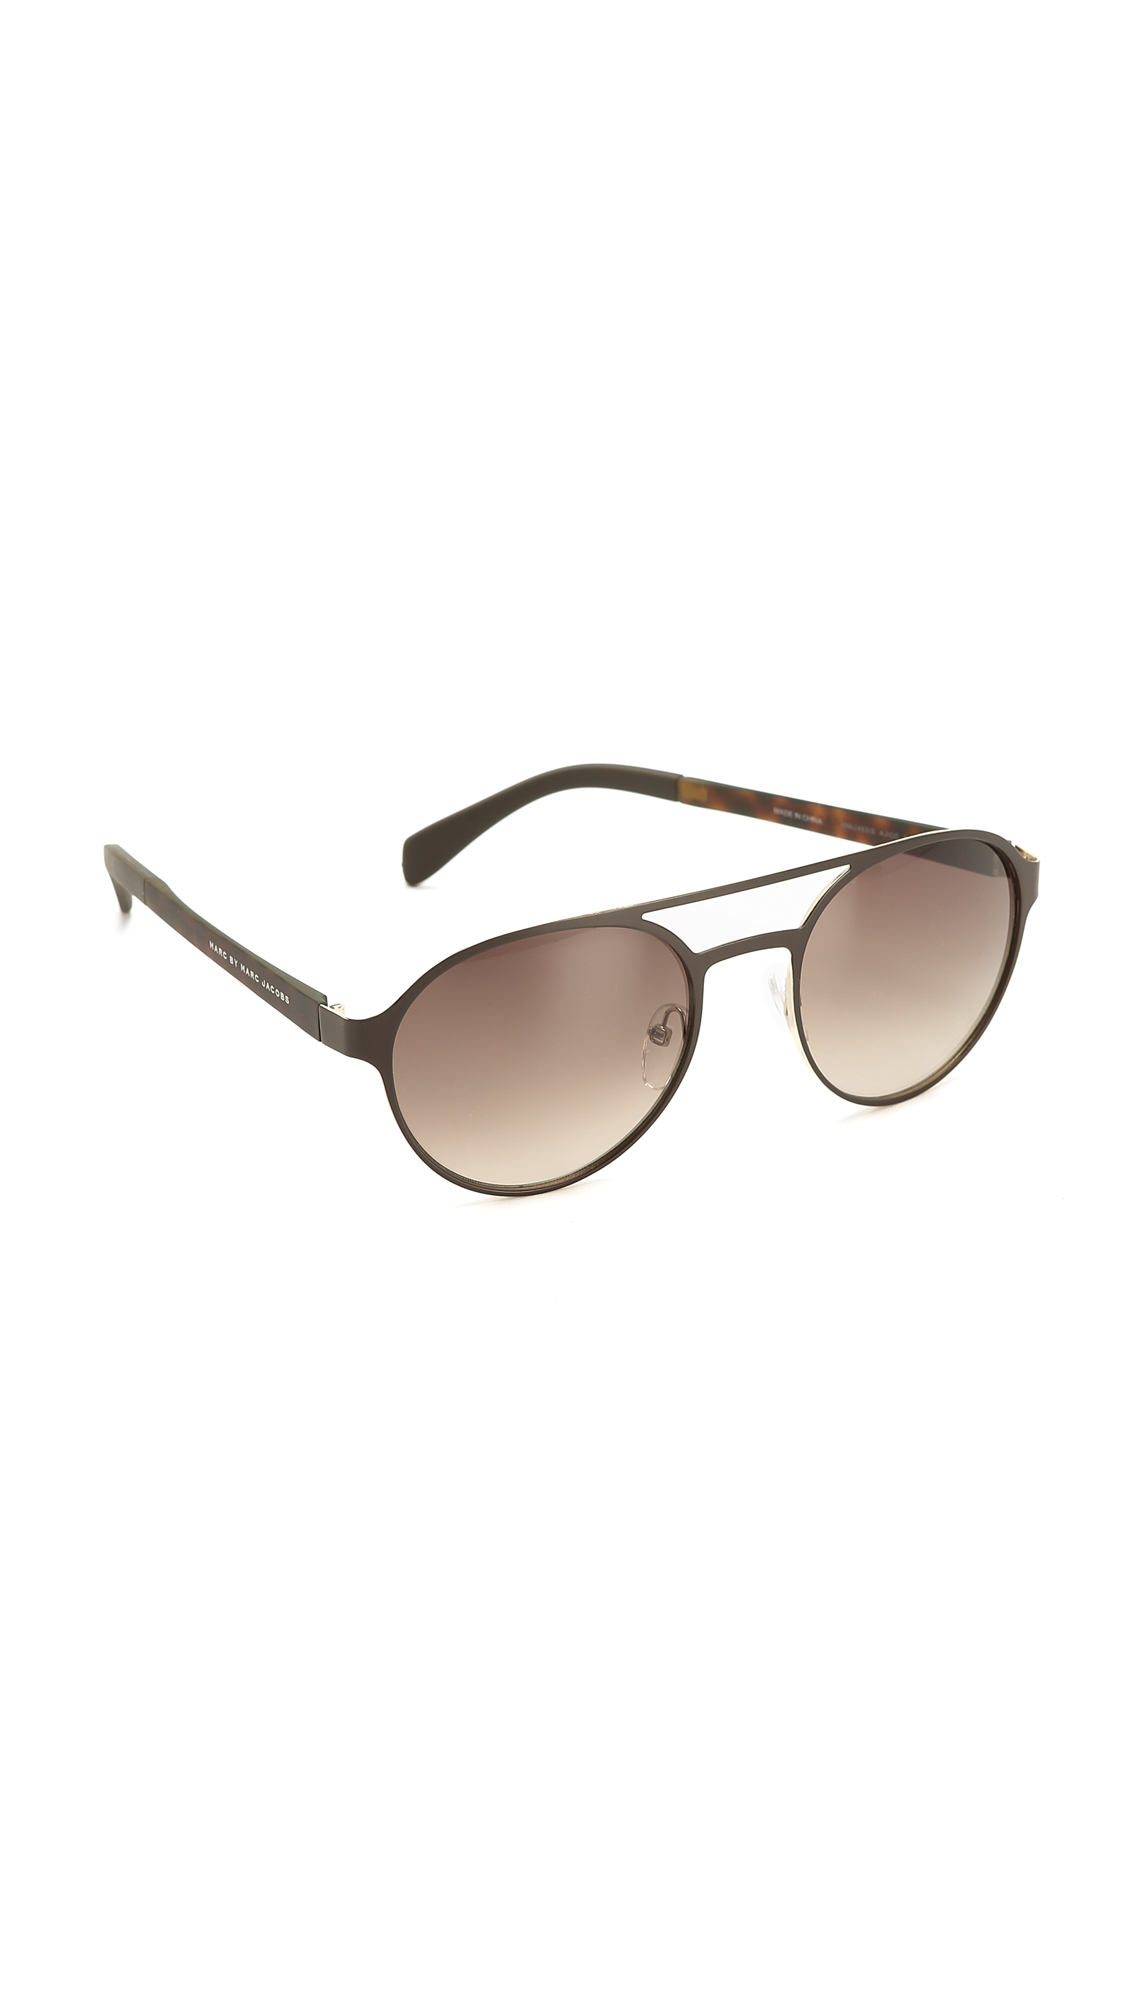 2526b377e4 Marc By Marc Jacobs Round Aviator Sunglasses - Brown brown Gradient ...